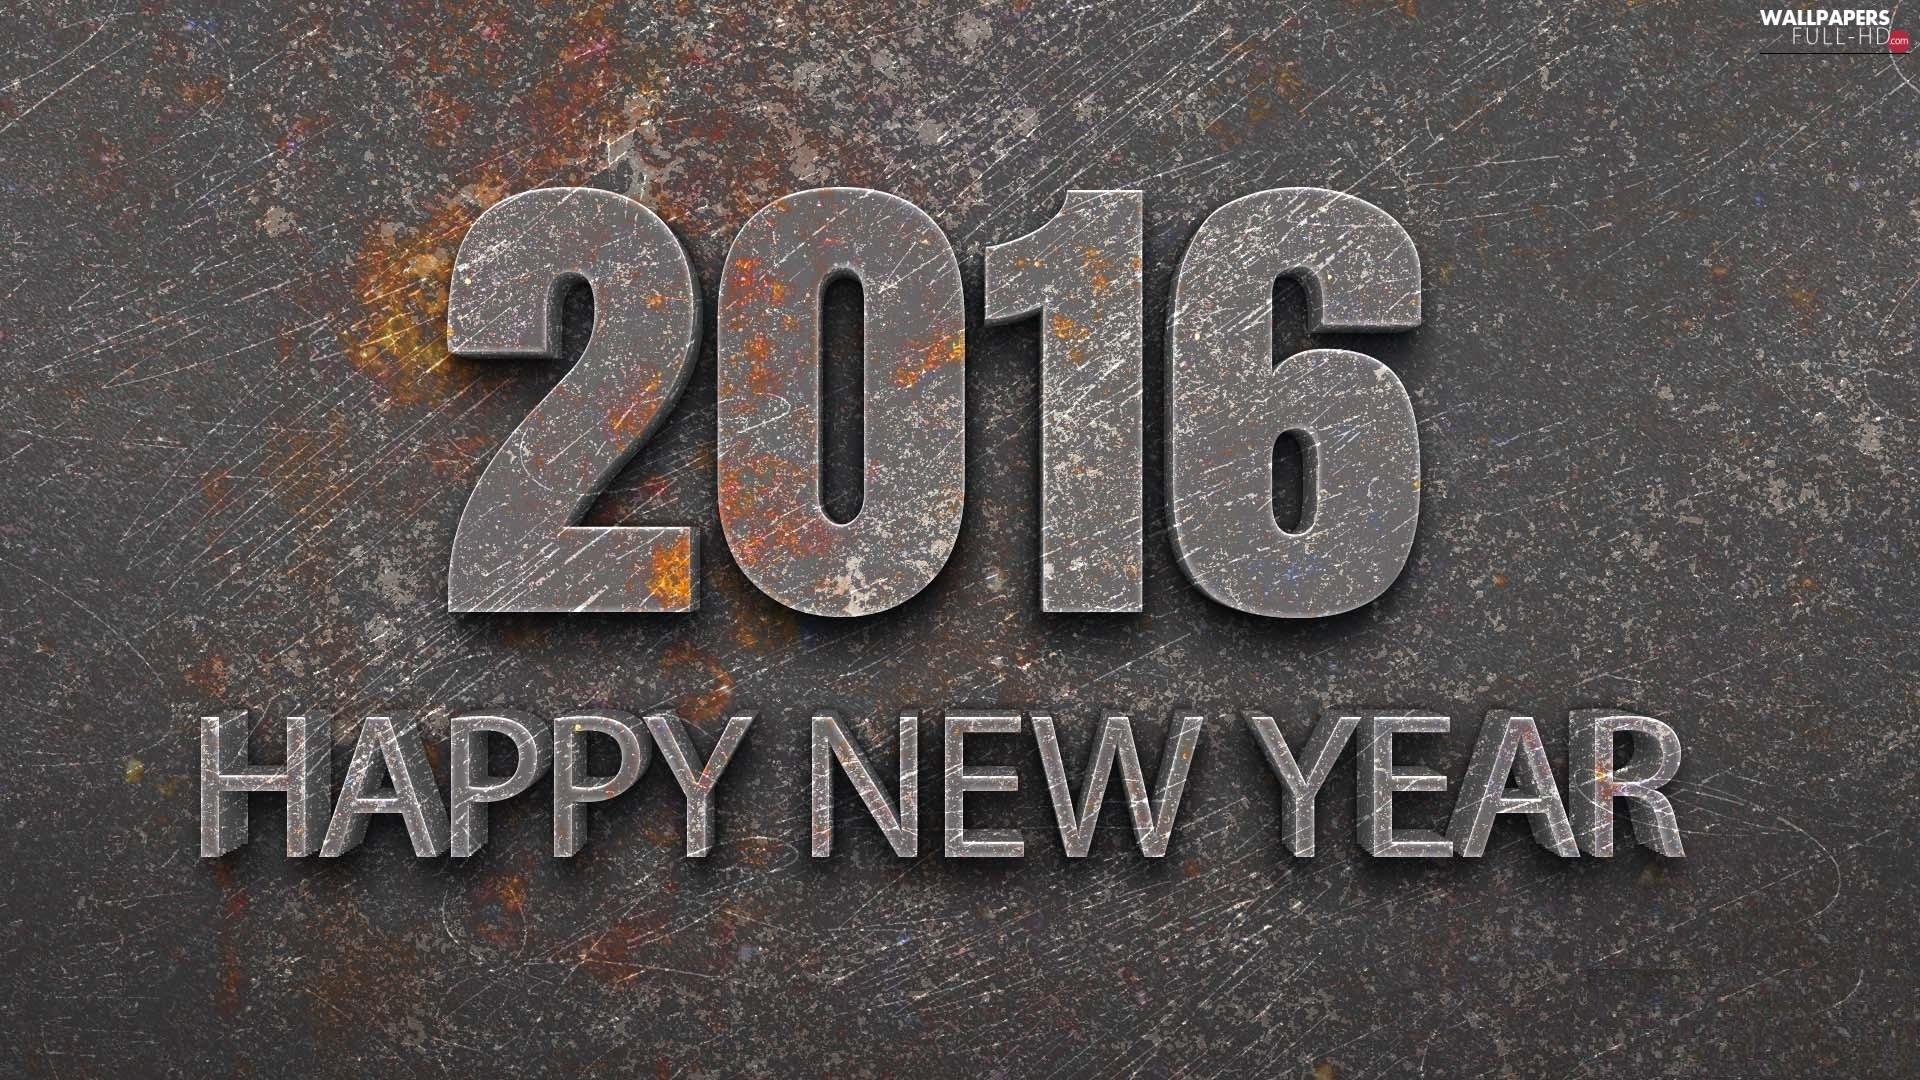 New, text, Year, HAPPY, graphics, 3D, 2016, stone